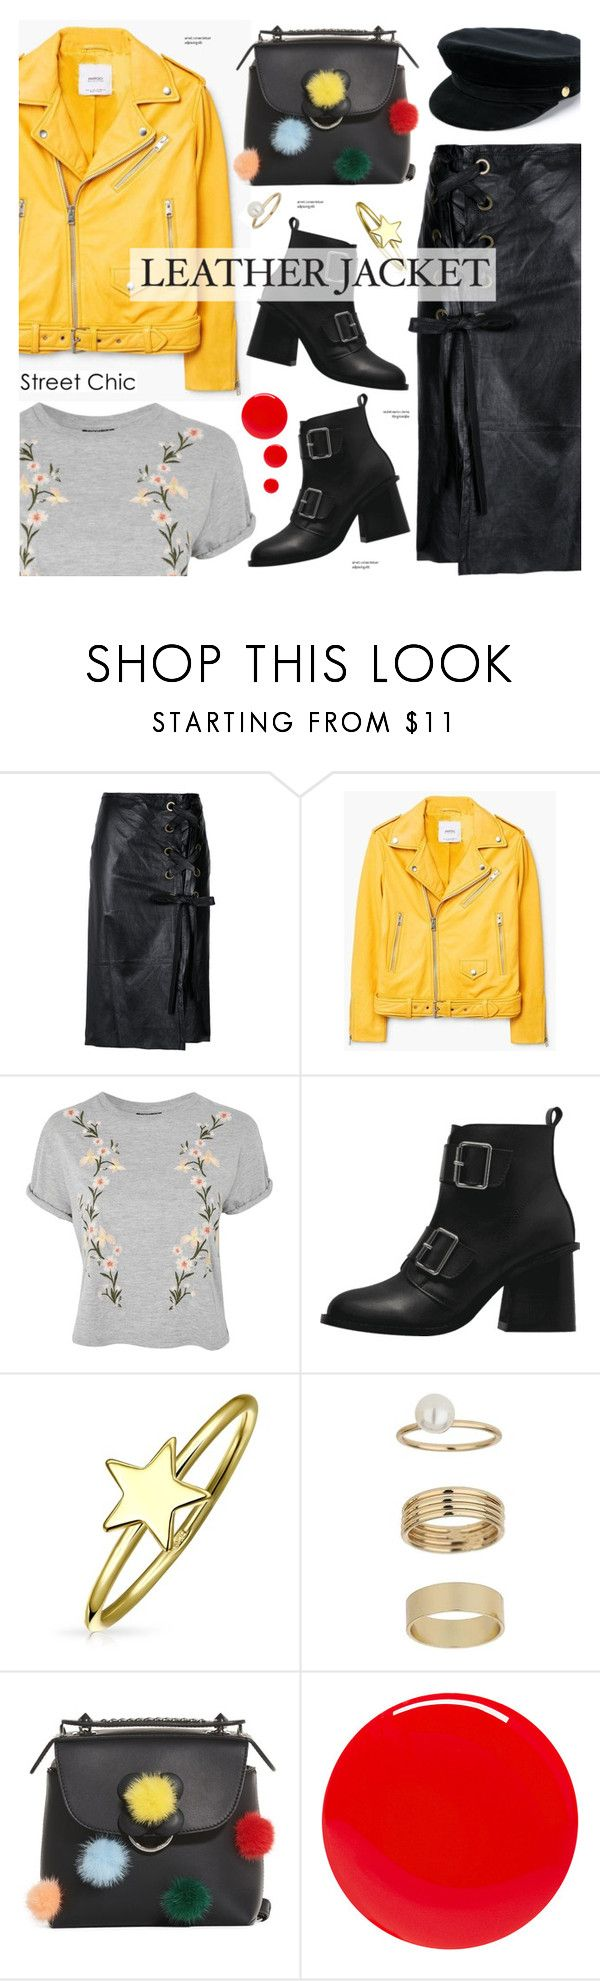 """""""Leather Jacket. midi skirt - street style"""" by cly88 ❤ liked on Polyvore featuring nk, MANGO, Topshop, Bling Jewelry, Miss Selfridge, Fendi, Tom Ford and Manokhi"""